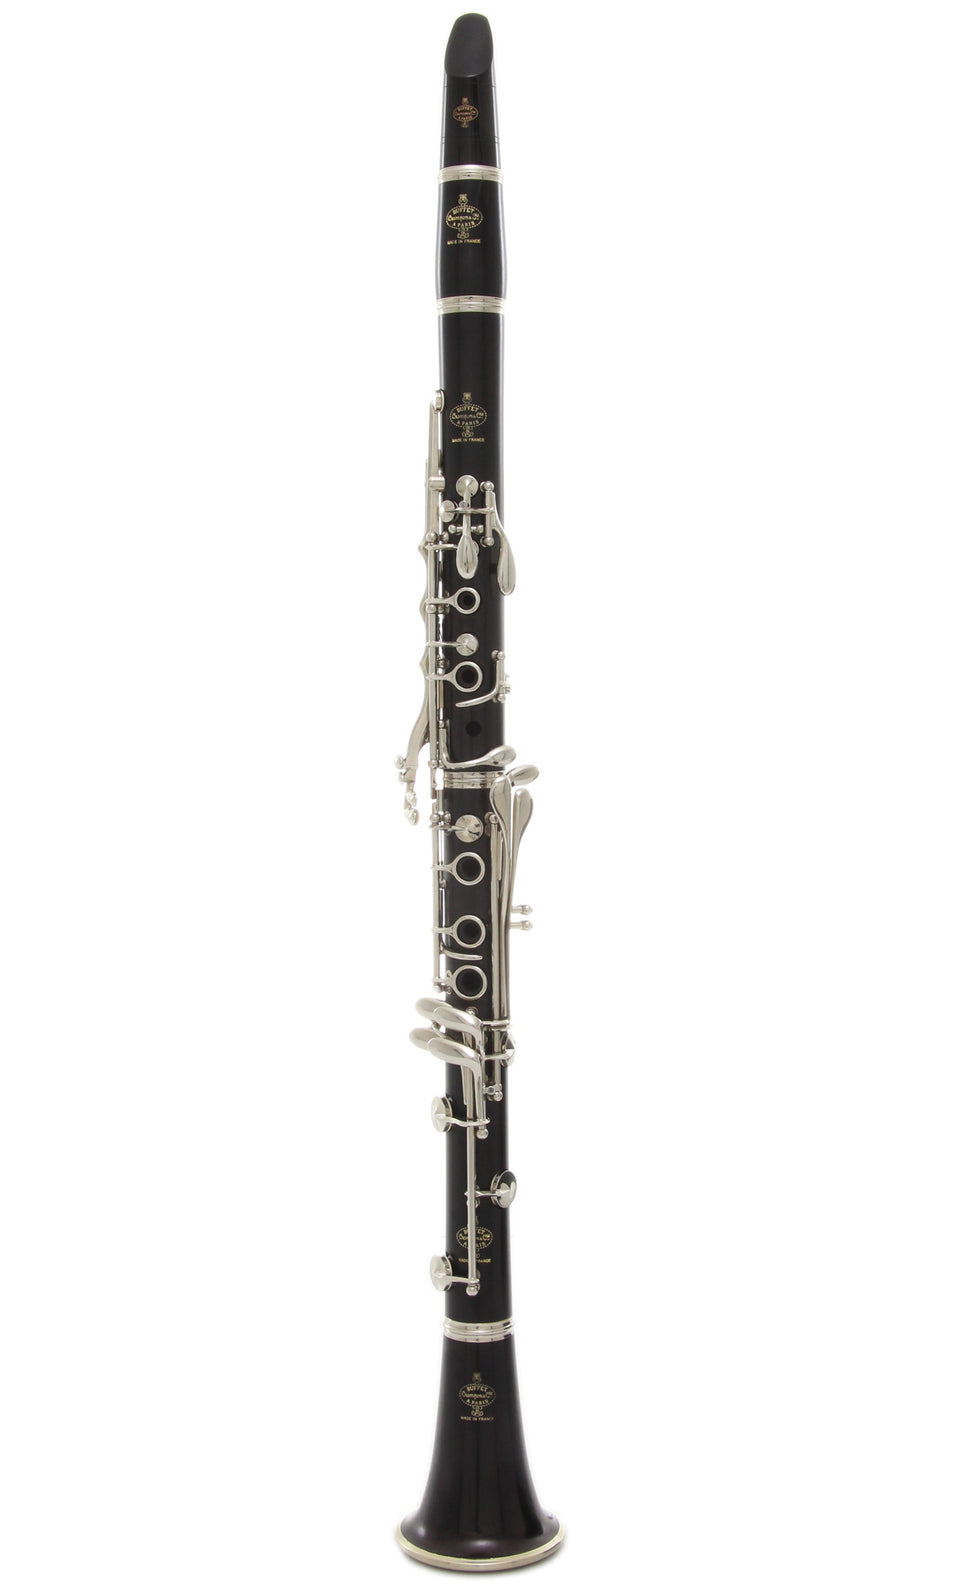 Buffet Crampon BC1231-5-0 R13 A Clarinet - Nickel Plated Keys